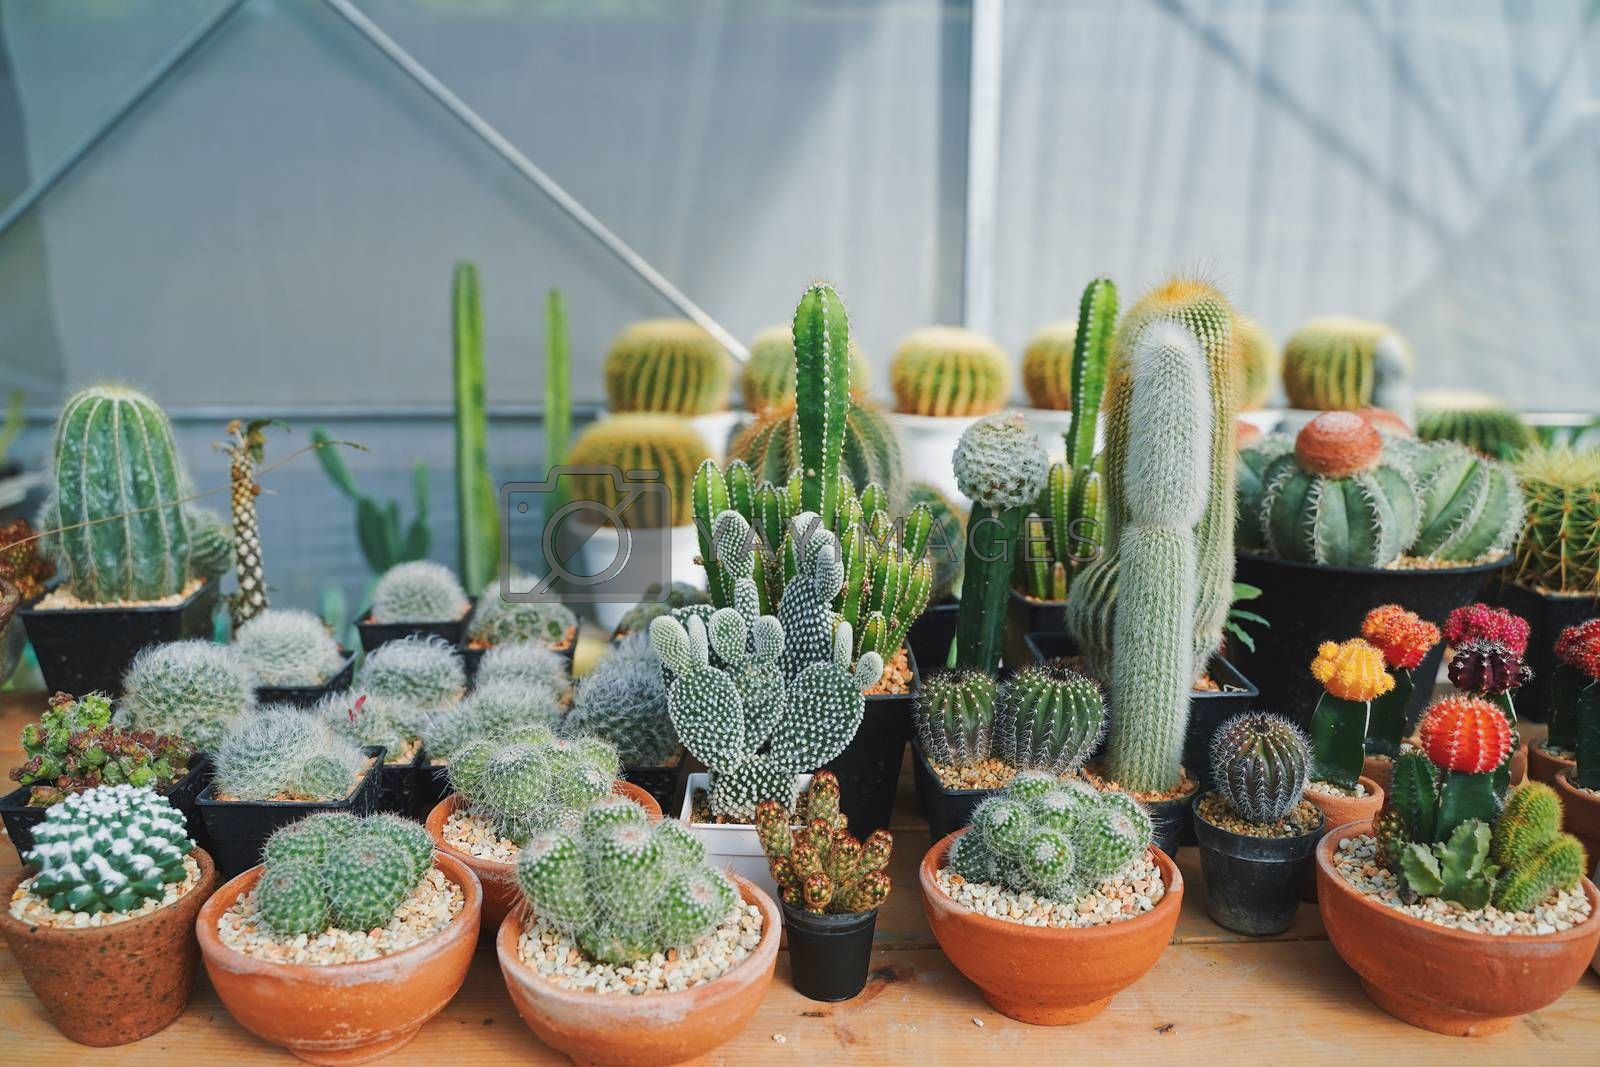 Many of various cactus plants on the pot at agriculture greenhouse garden